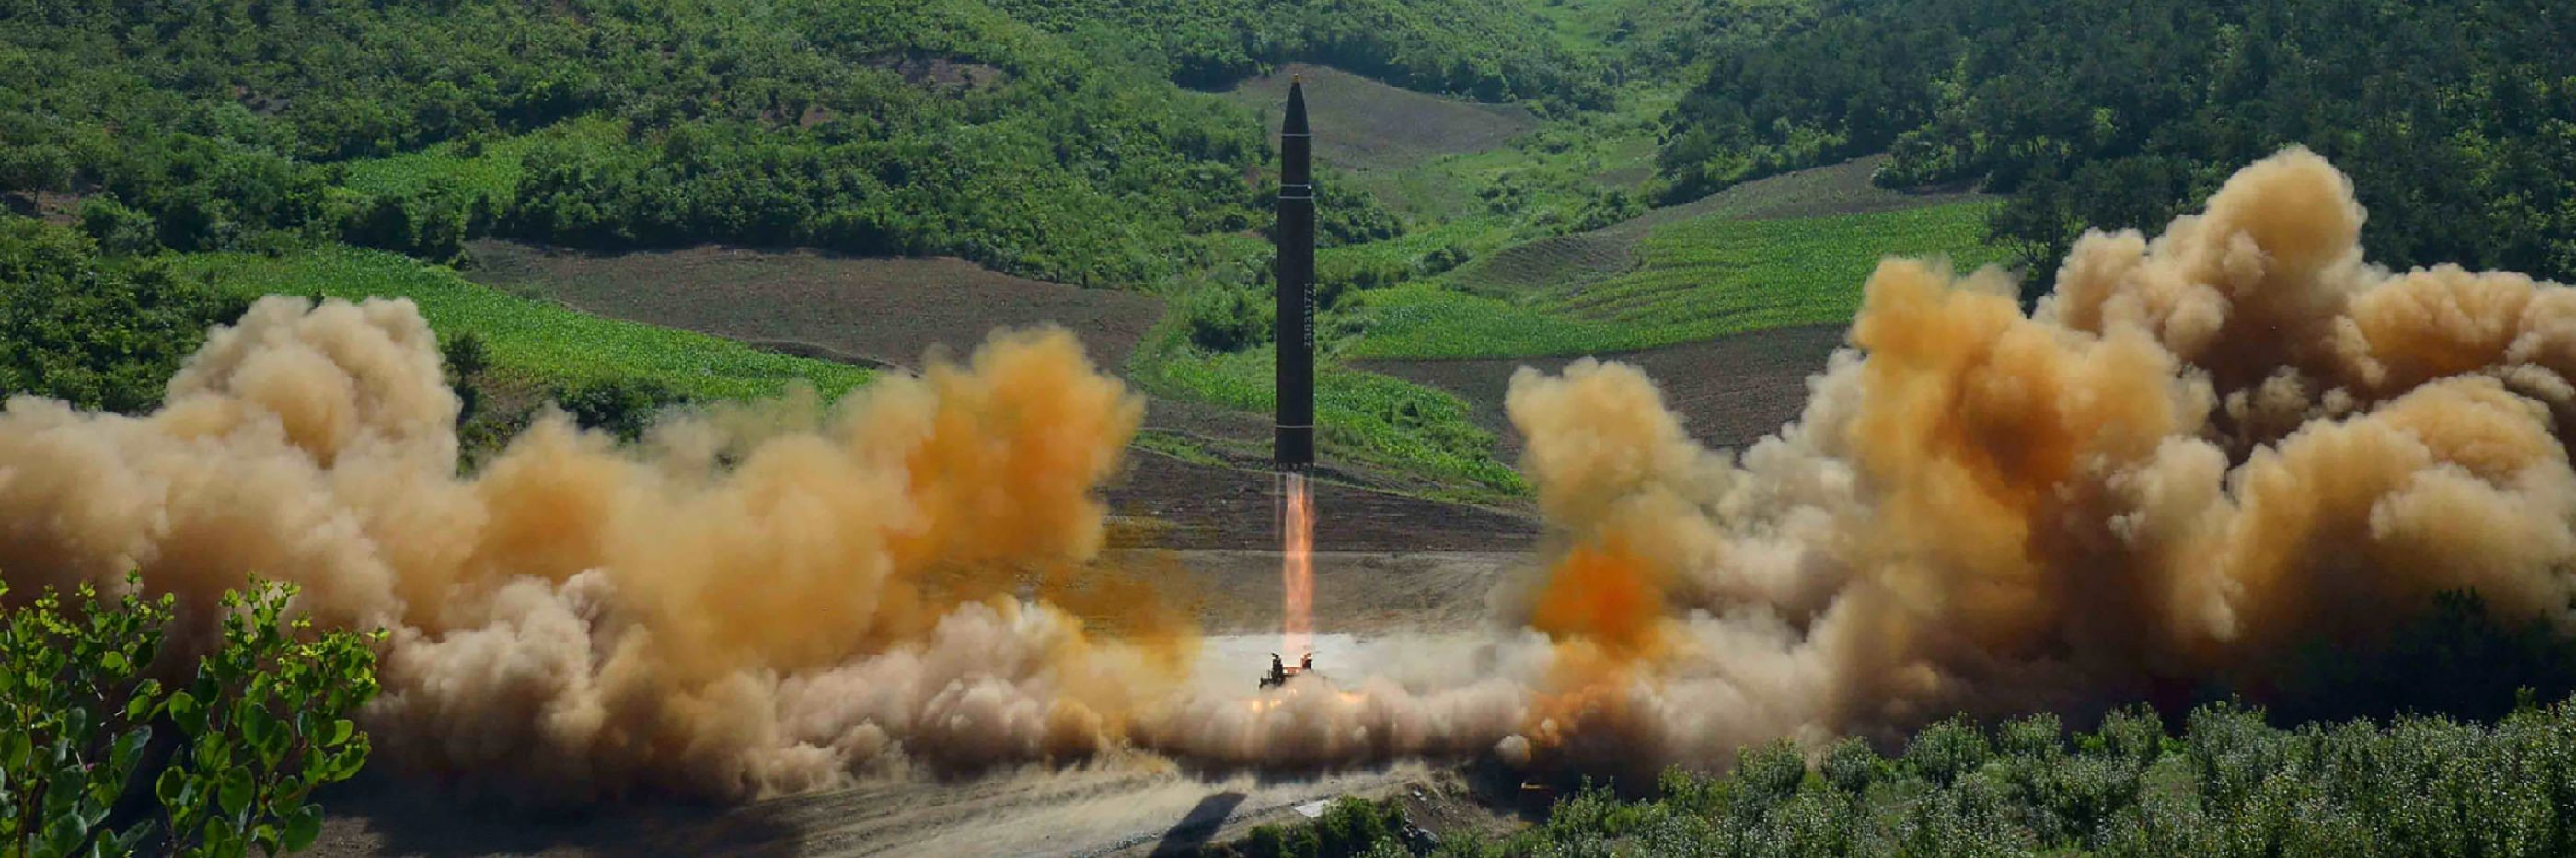 This photograph, released by the Korean Central News Agency in North Korea on 4 June 2017, depicts the test firing of an intercontinental ballistic missile.